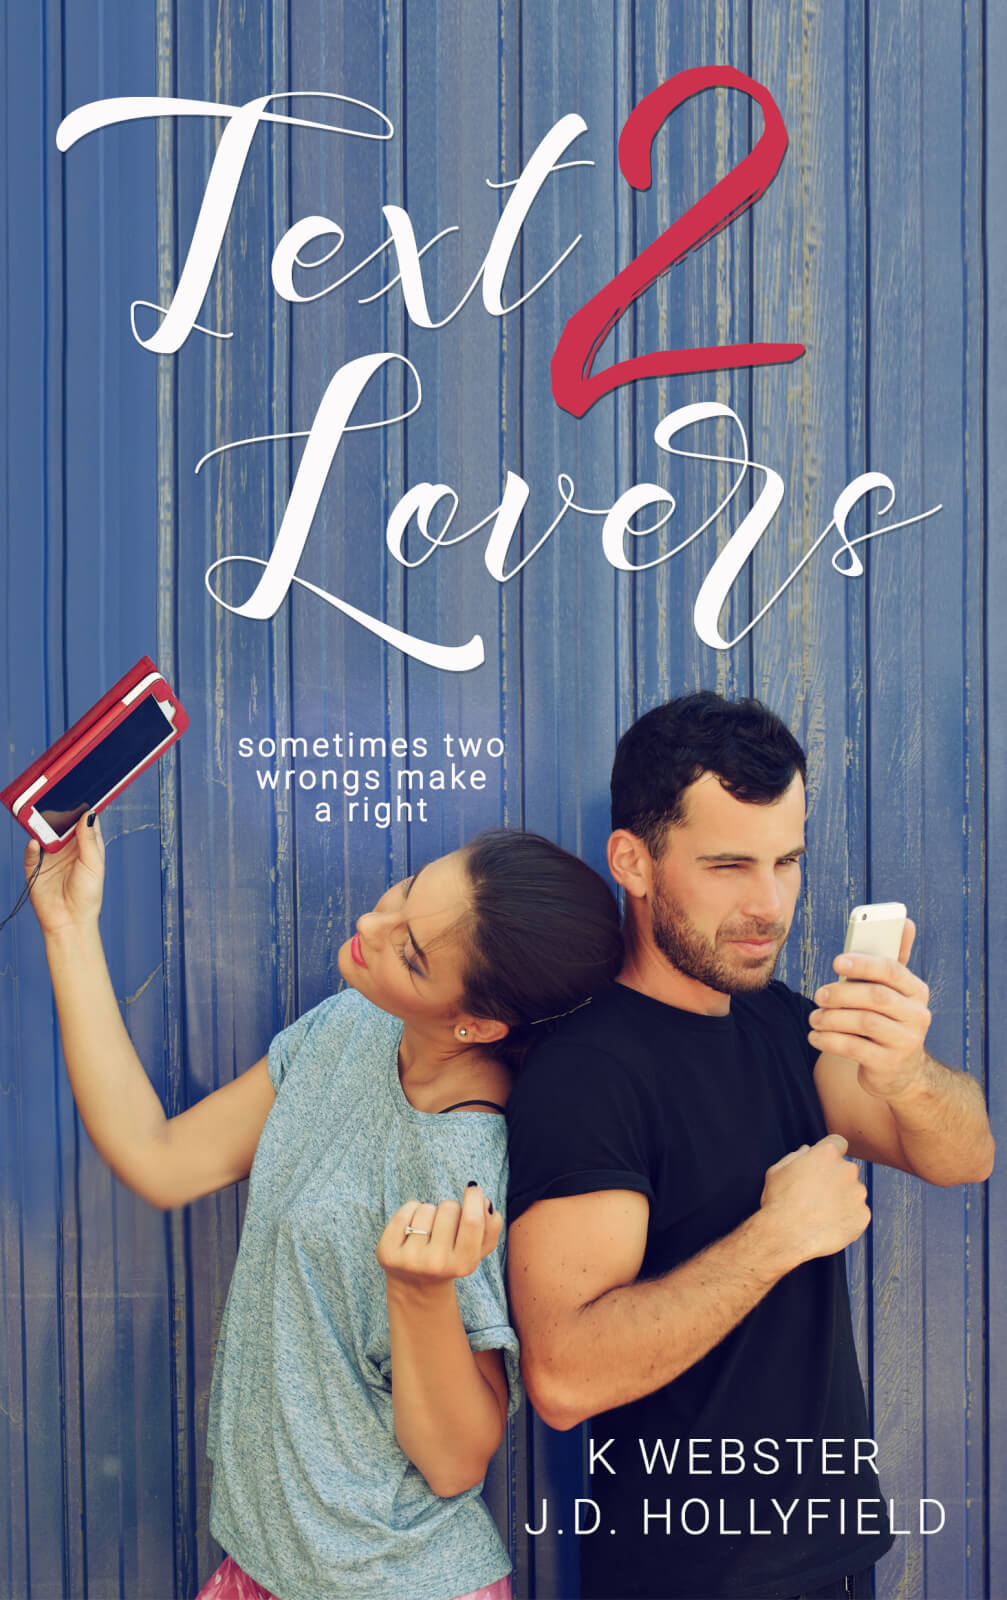 Release Day Blitz & Review: Text 2 Lovers by K. Webster and J.D. Hollyfield